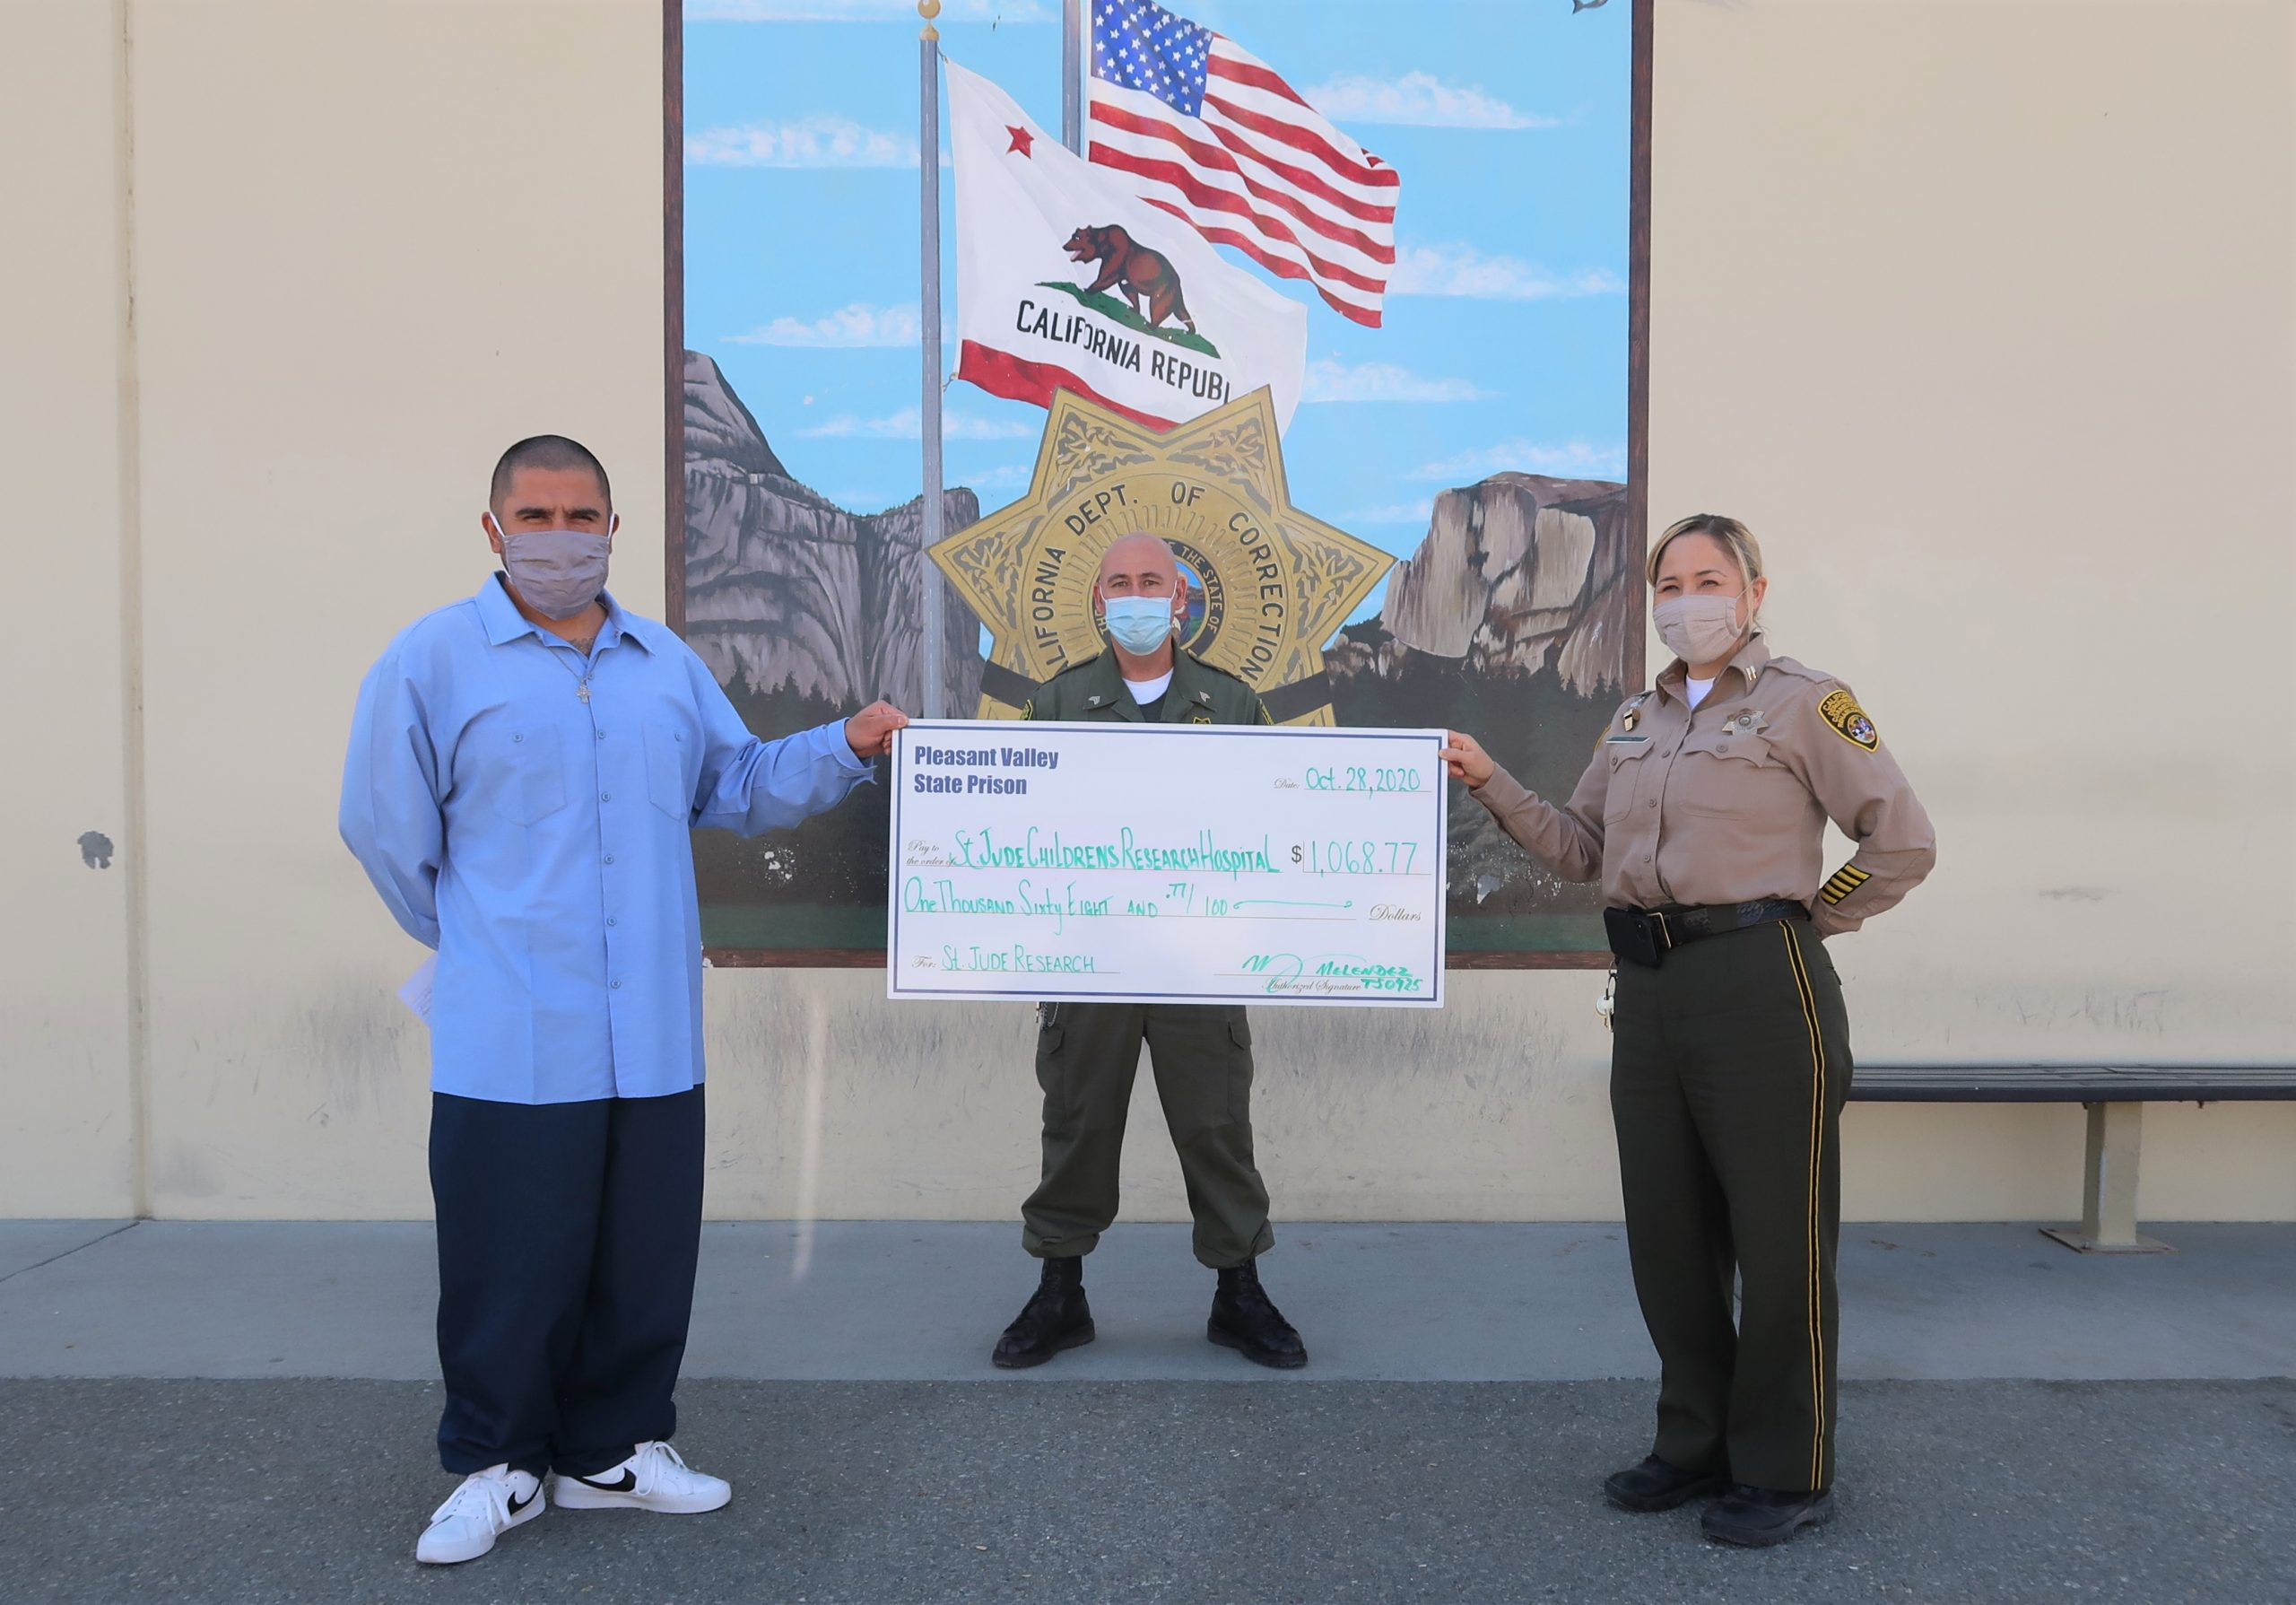 The prison population donated money to St. Jude, shown in a large check held by an inmate and two prison staff members.